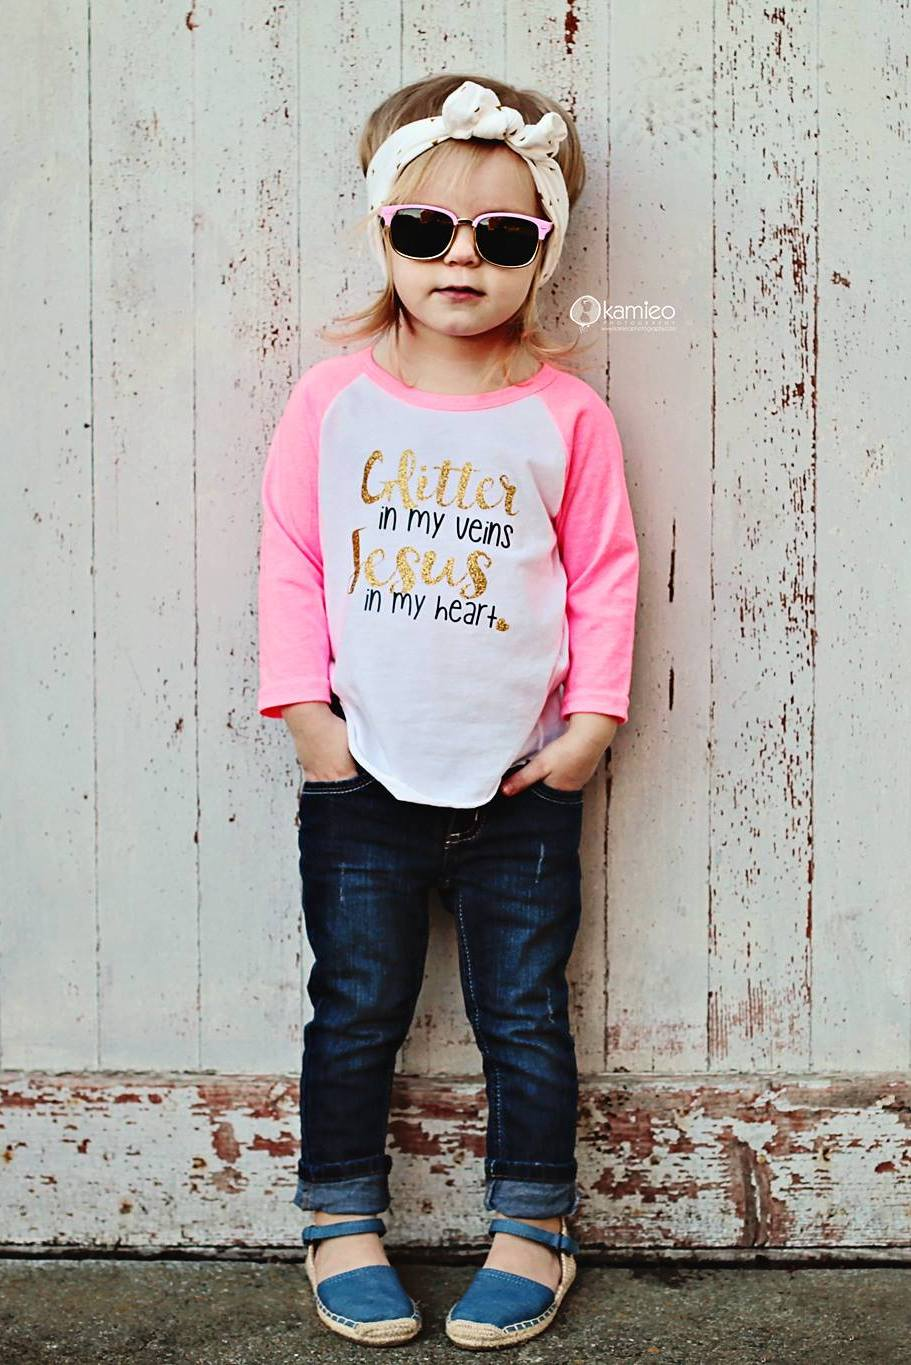 A glitter raglan tee in bright pink is the perfect casual outfit for your princess! | Isn't She Lovely! - SugarBabies Blog